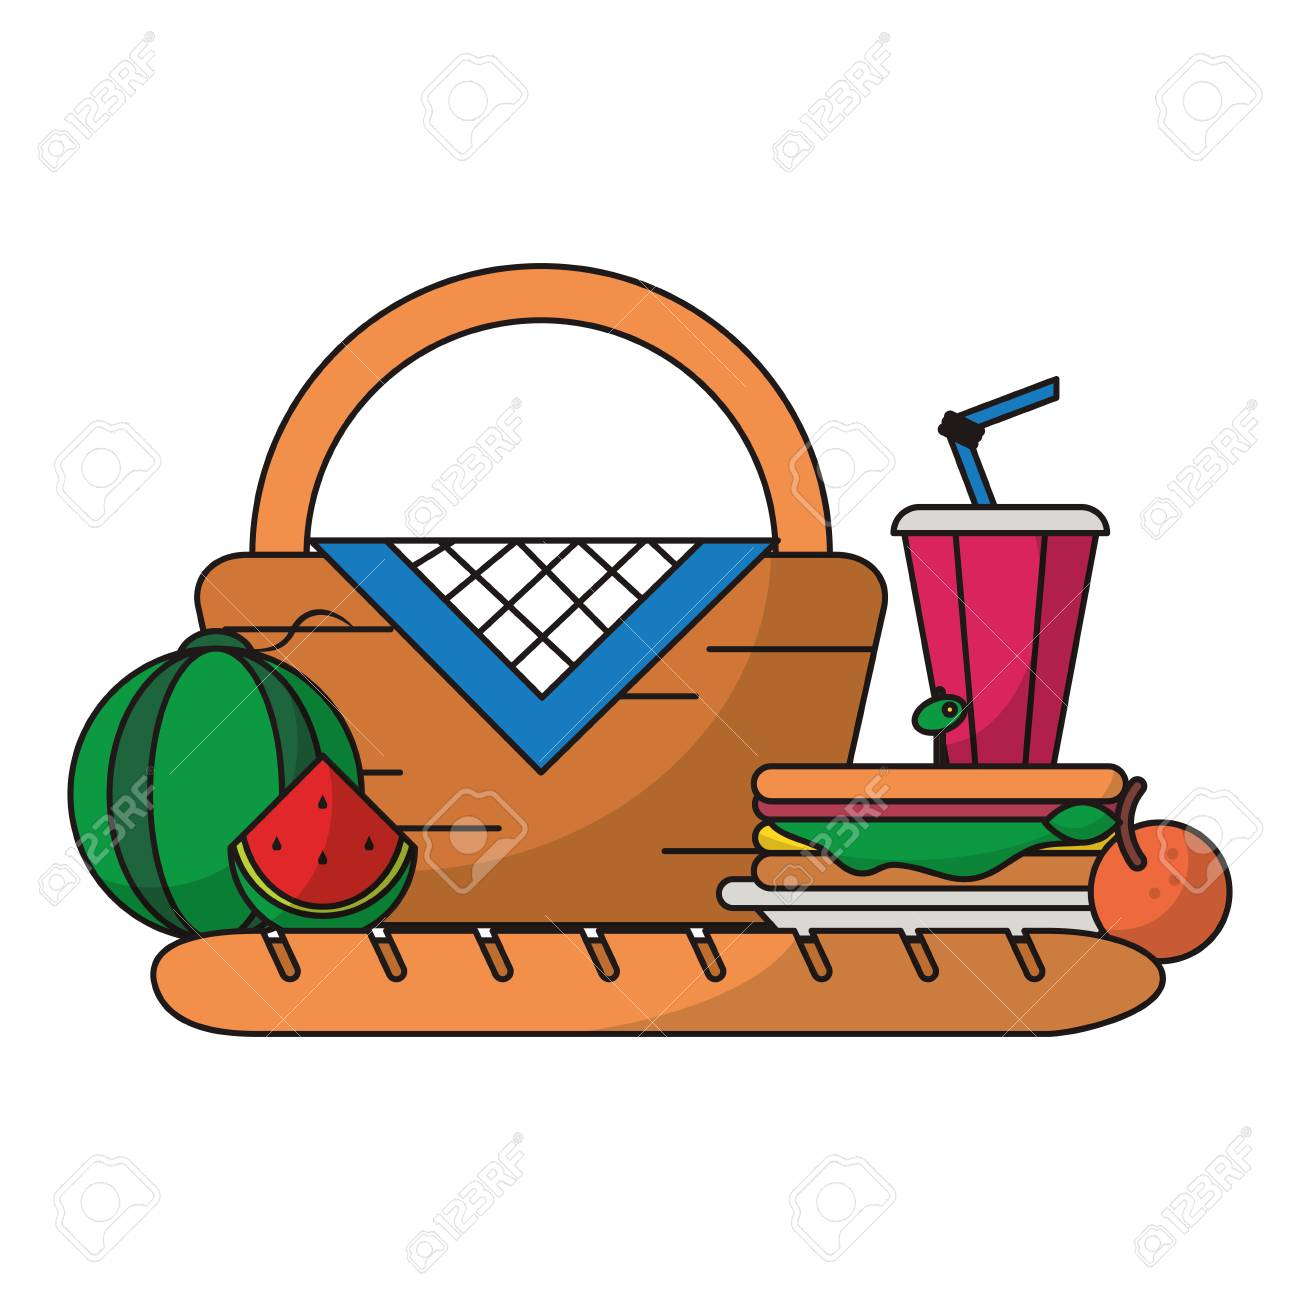 Picnic Basket With Food And Elements Cartoon Vector Illustration Royalty Free Cliparts Vectors And Stock Illustration Image 122547147